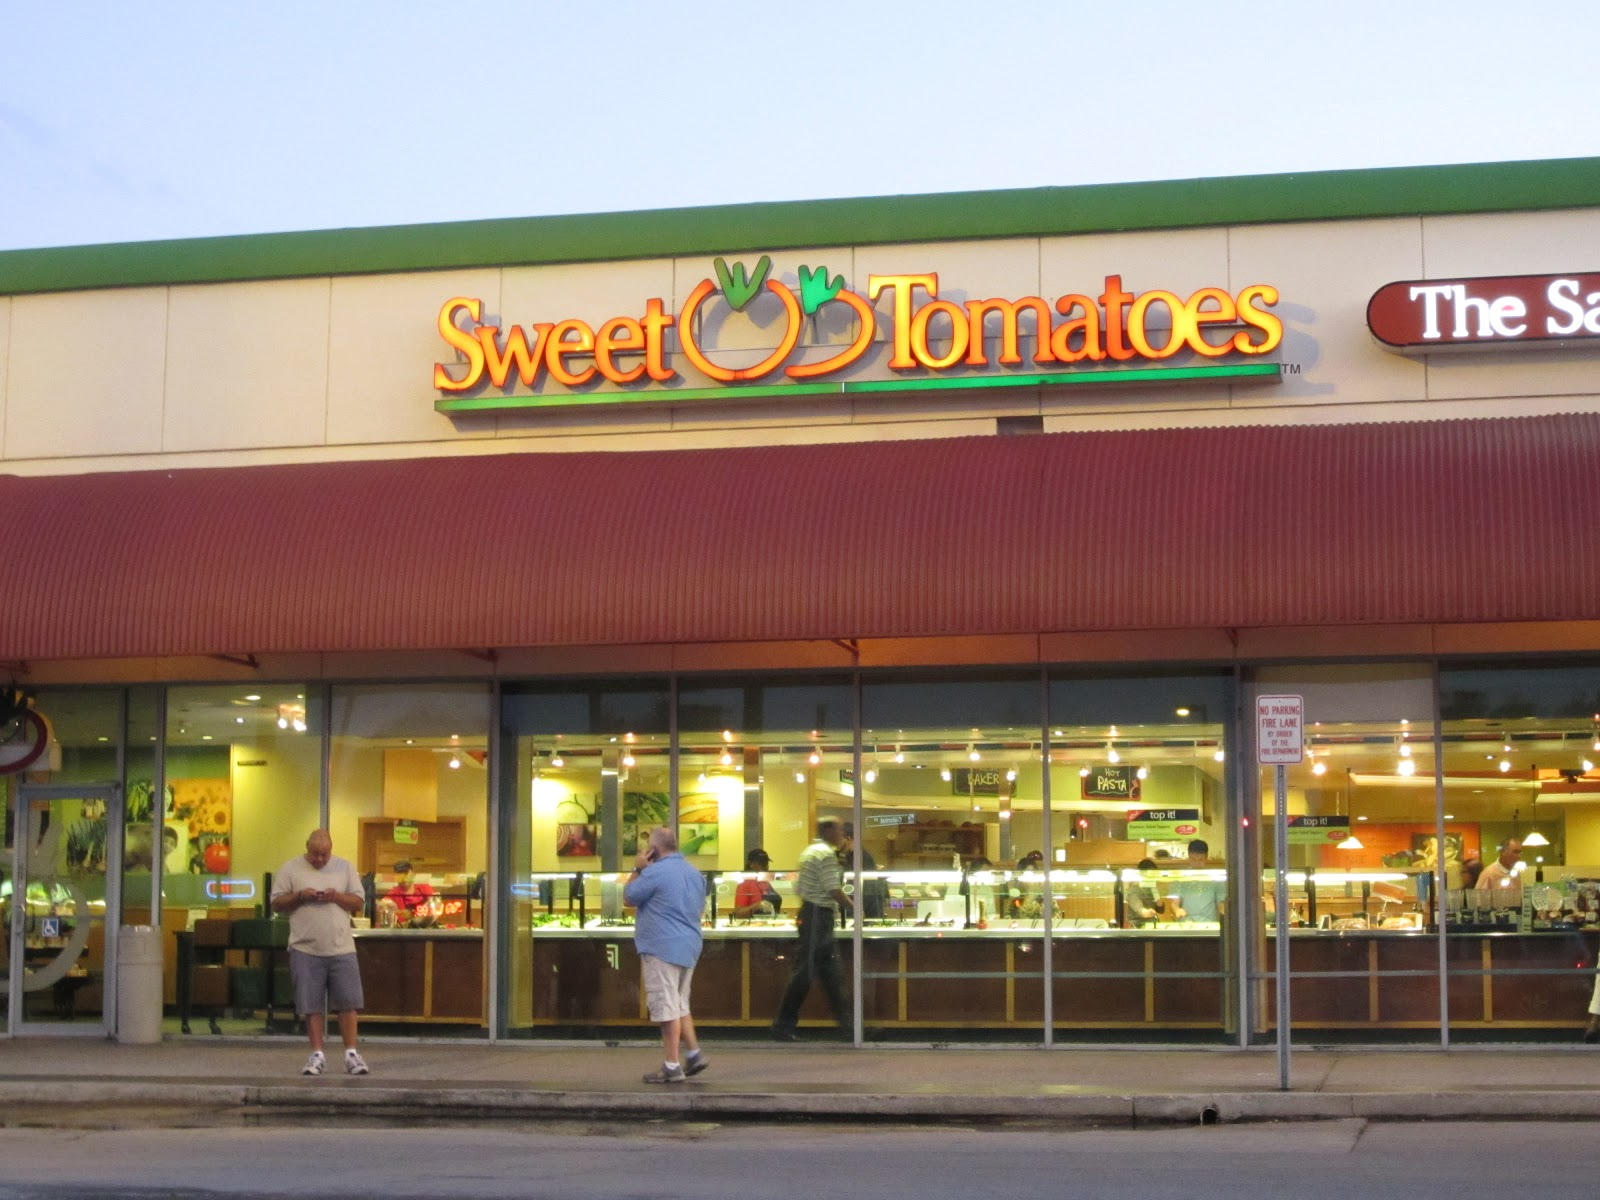 Florida Burger Lover: Sweet Tomatoes